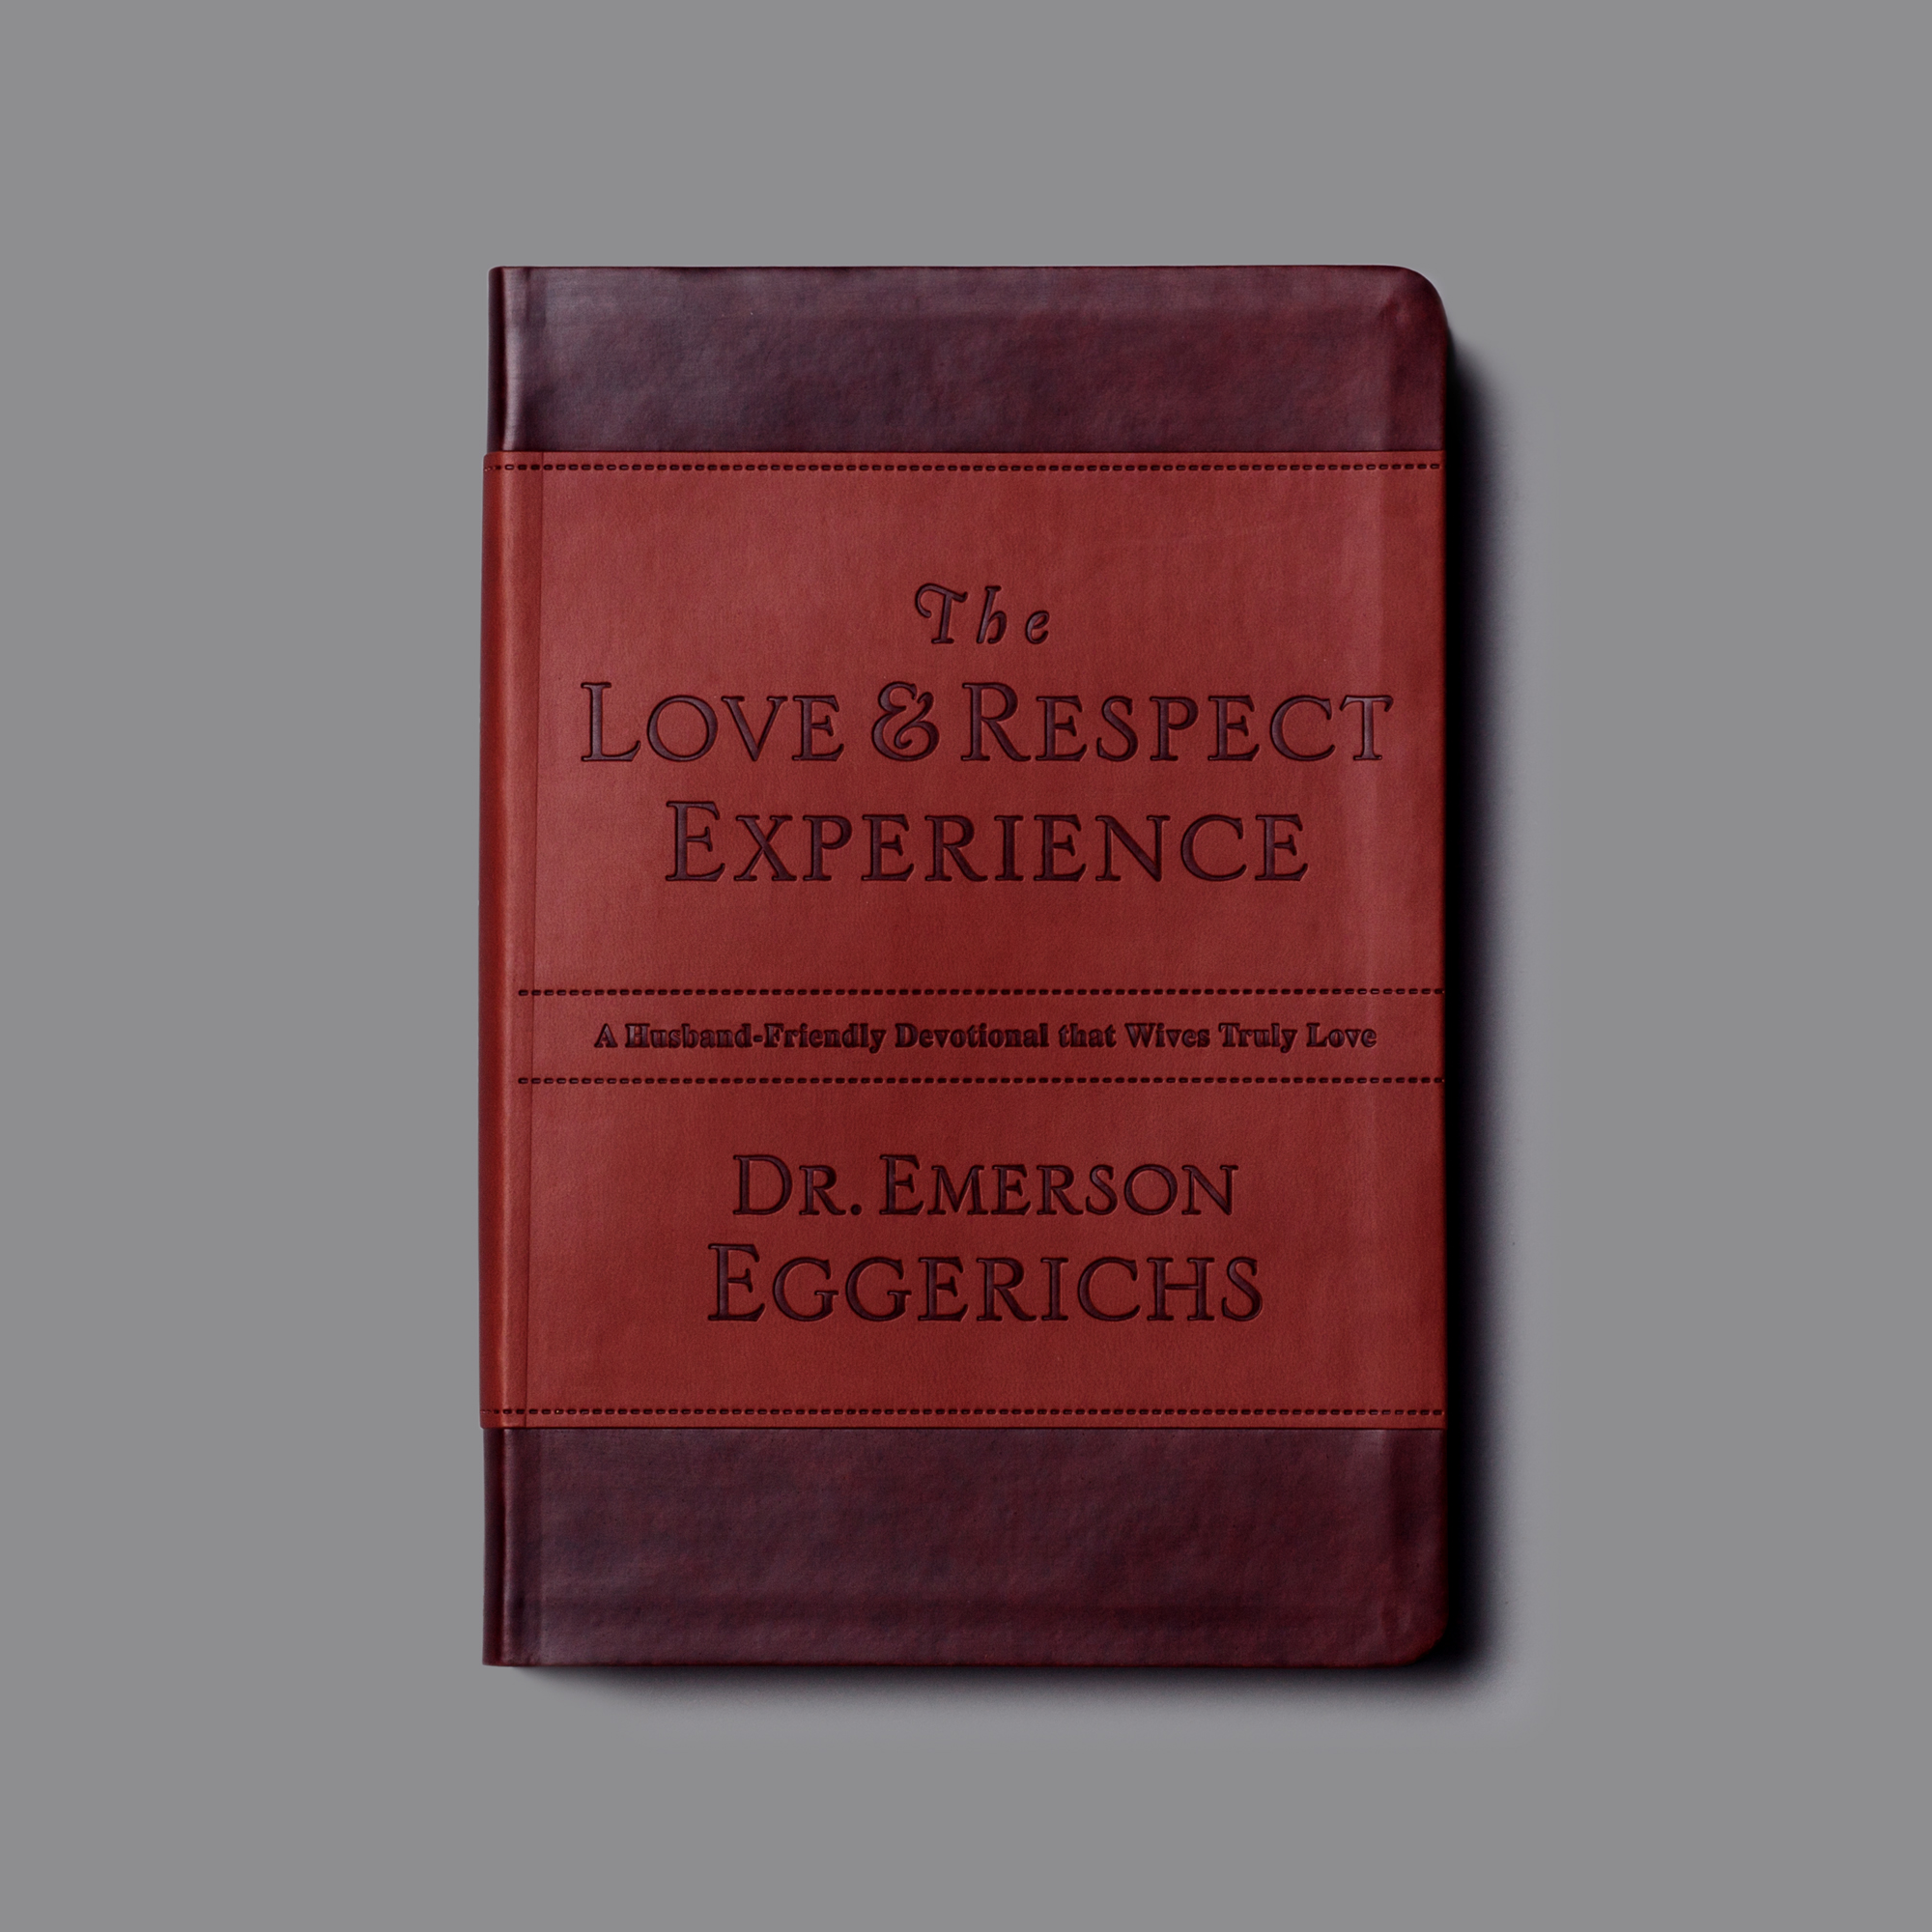 """The Love & Respect Experience - """"The typical husband just doesn't find the standard devotional book for couples that interesting-or that friendly. After trying it a few times, he just sort of finds other things to do,"""